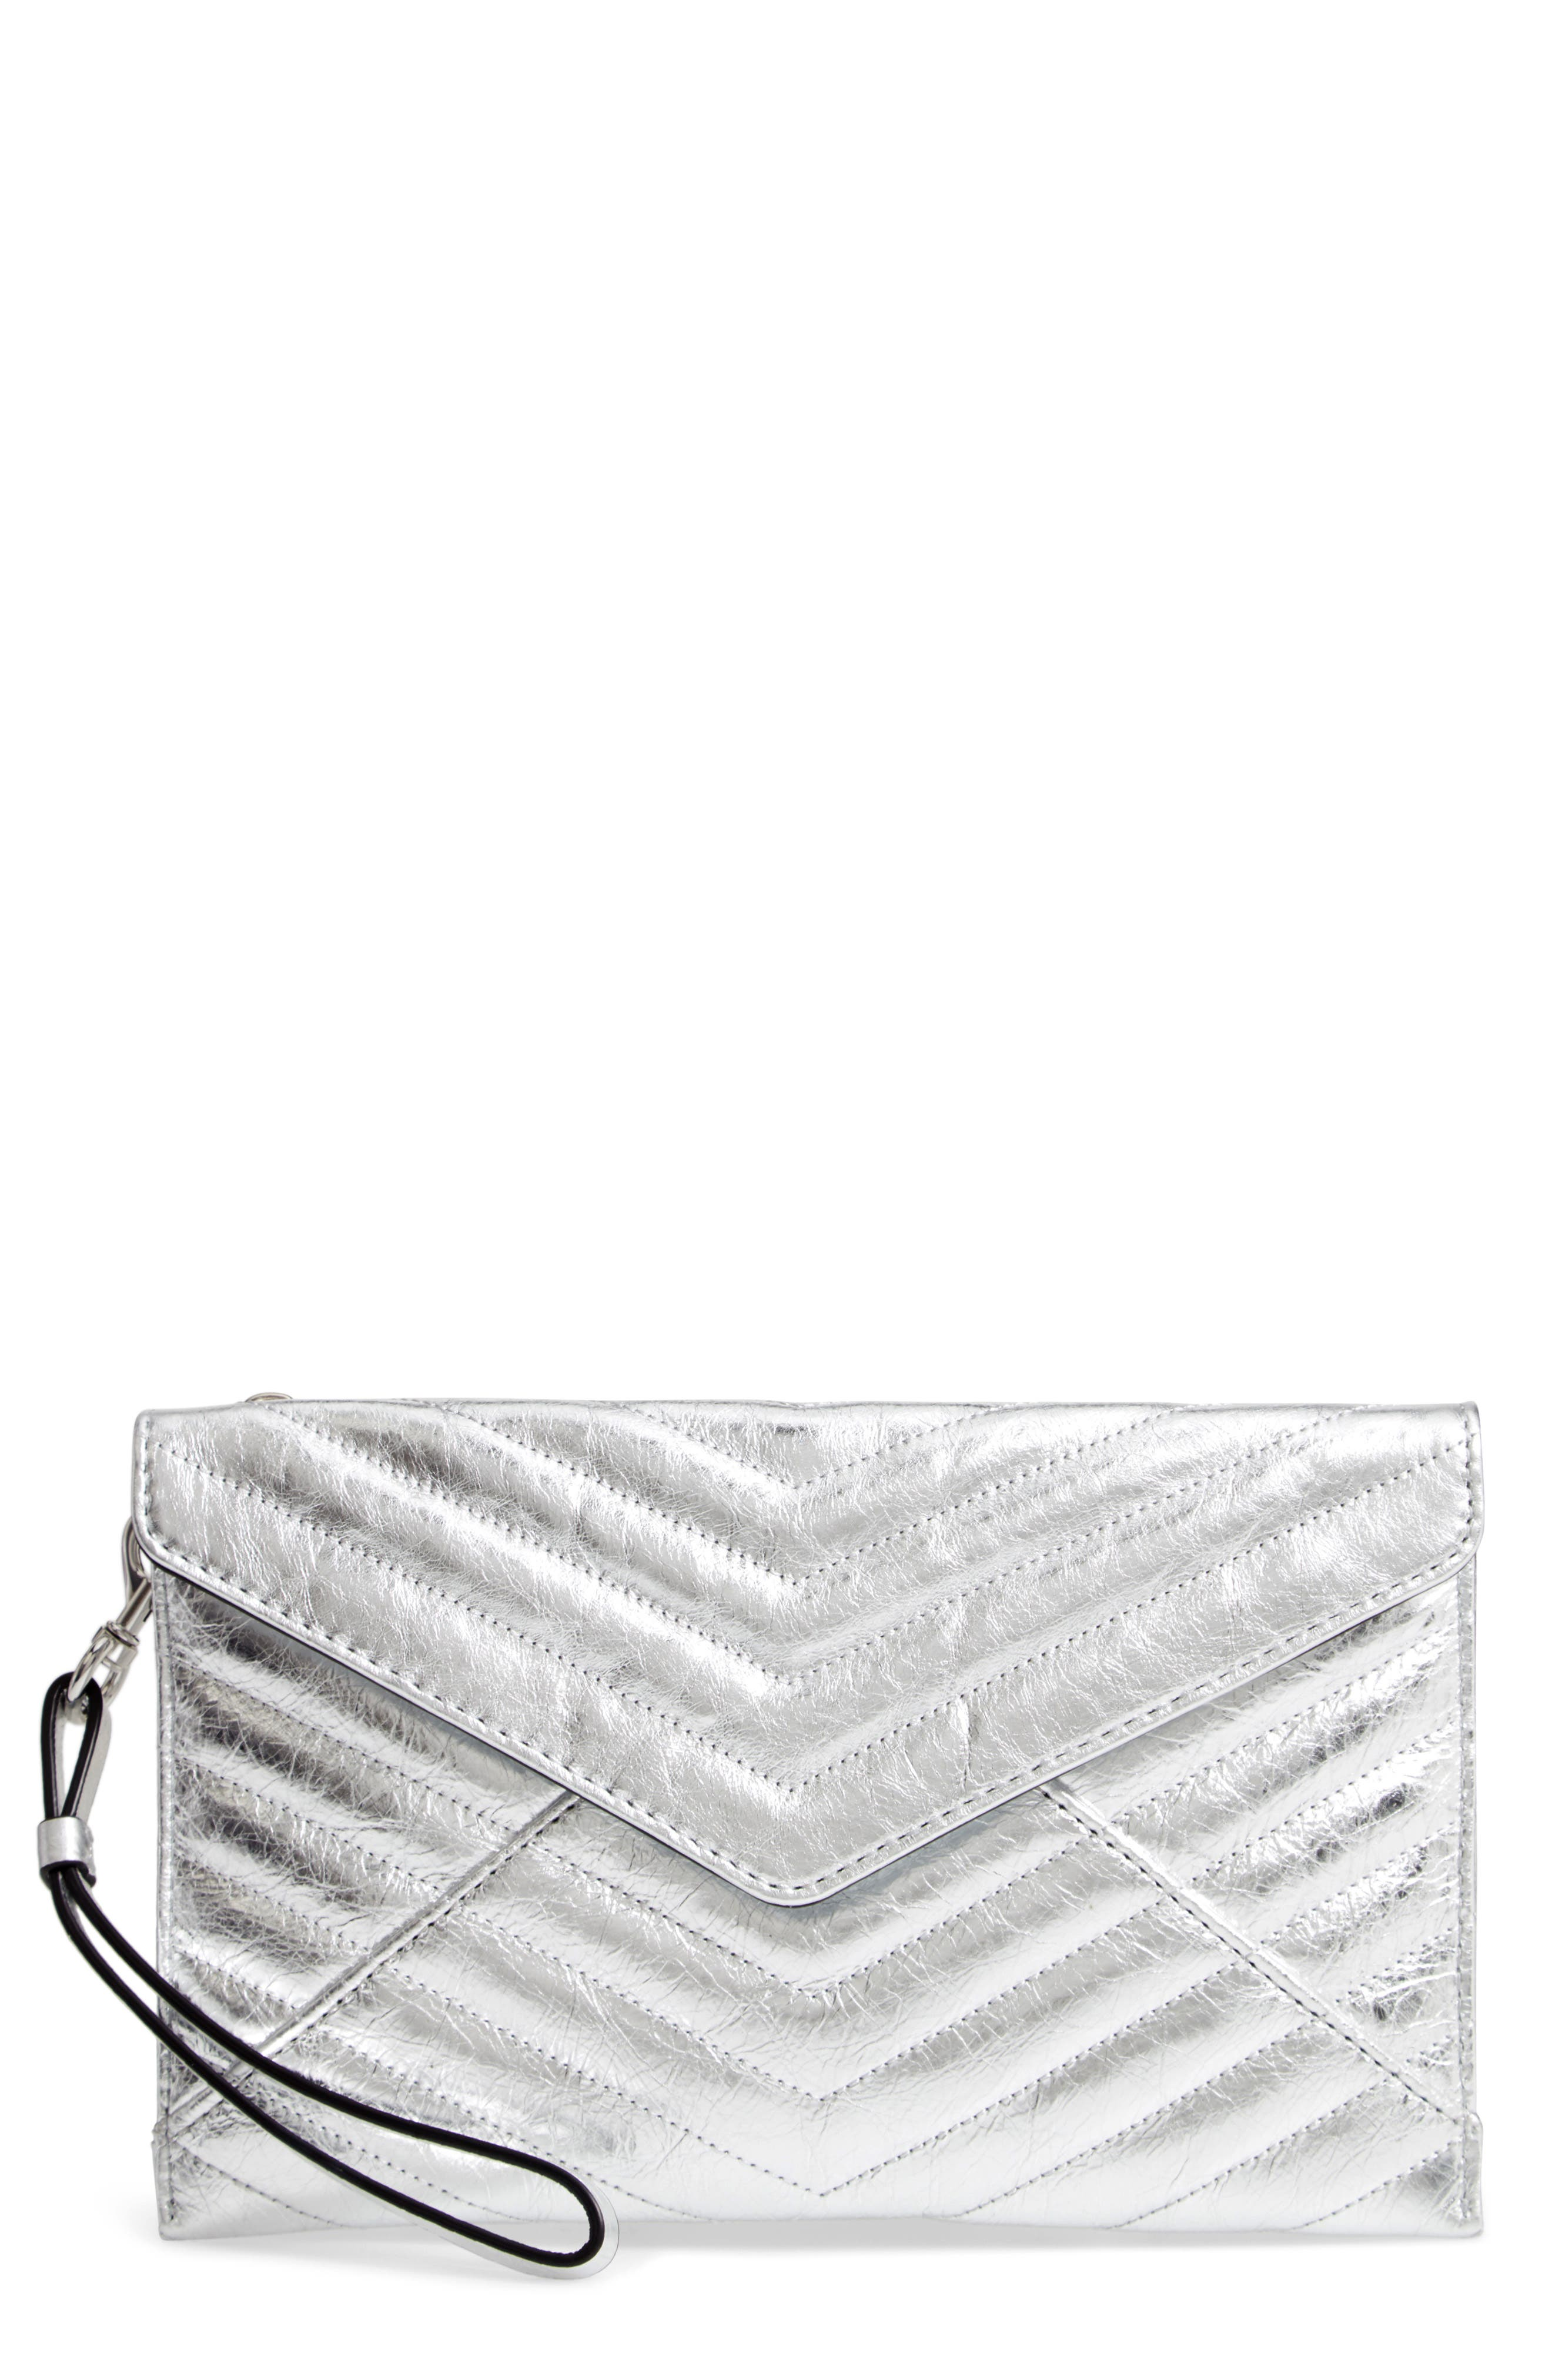 REBECCA MINKOFF Leo Quilted Leather Clutch, Main, color, SILVER